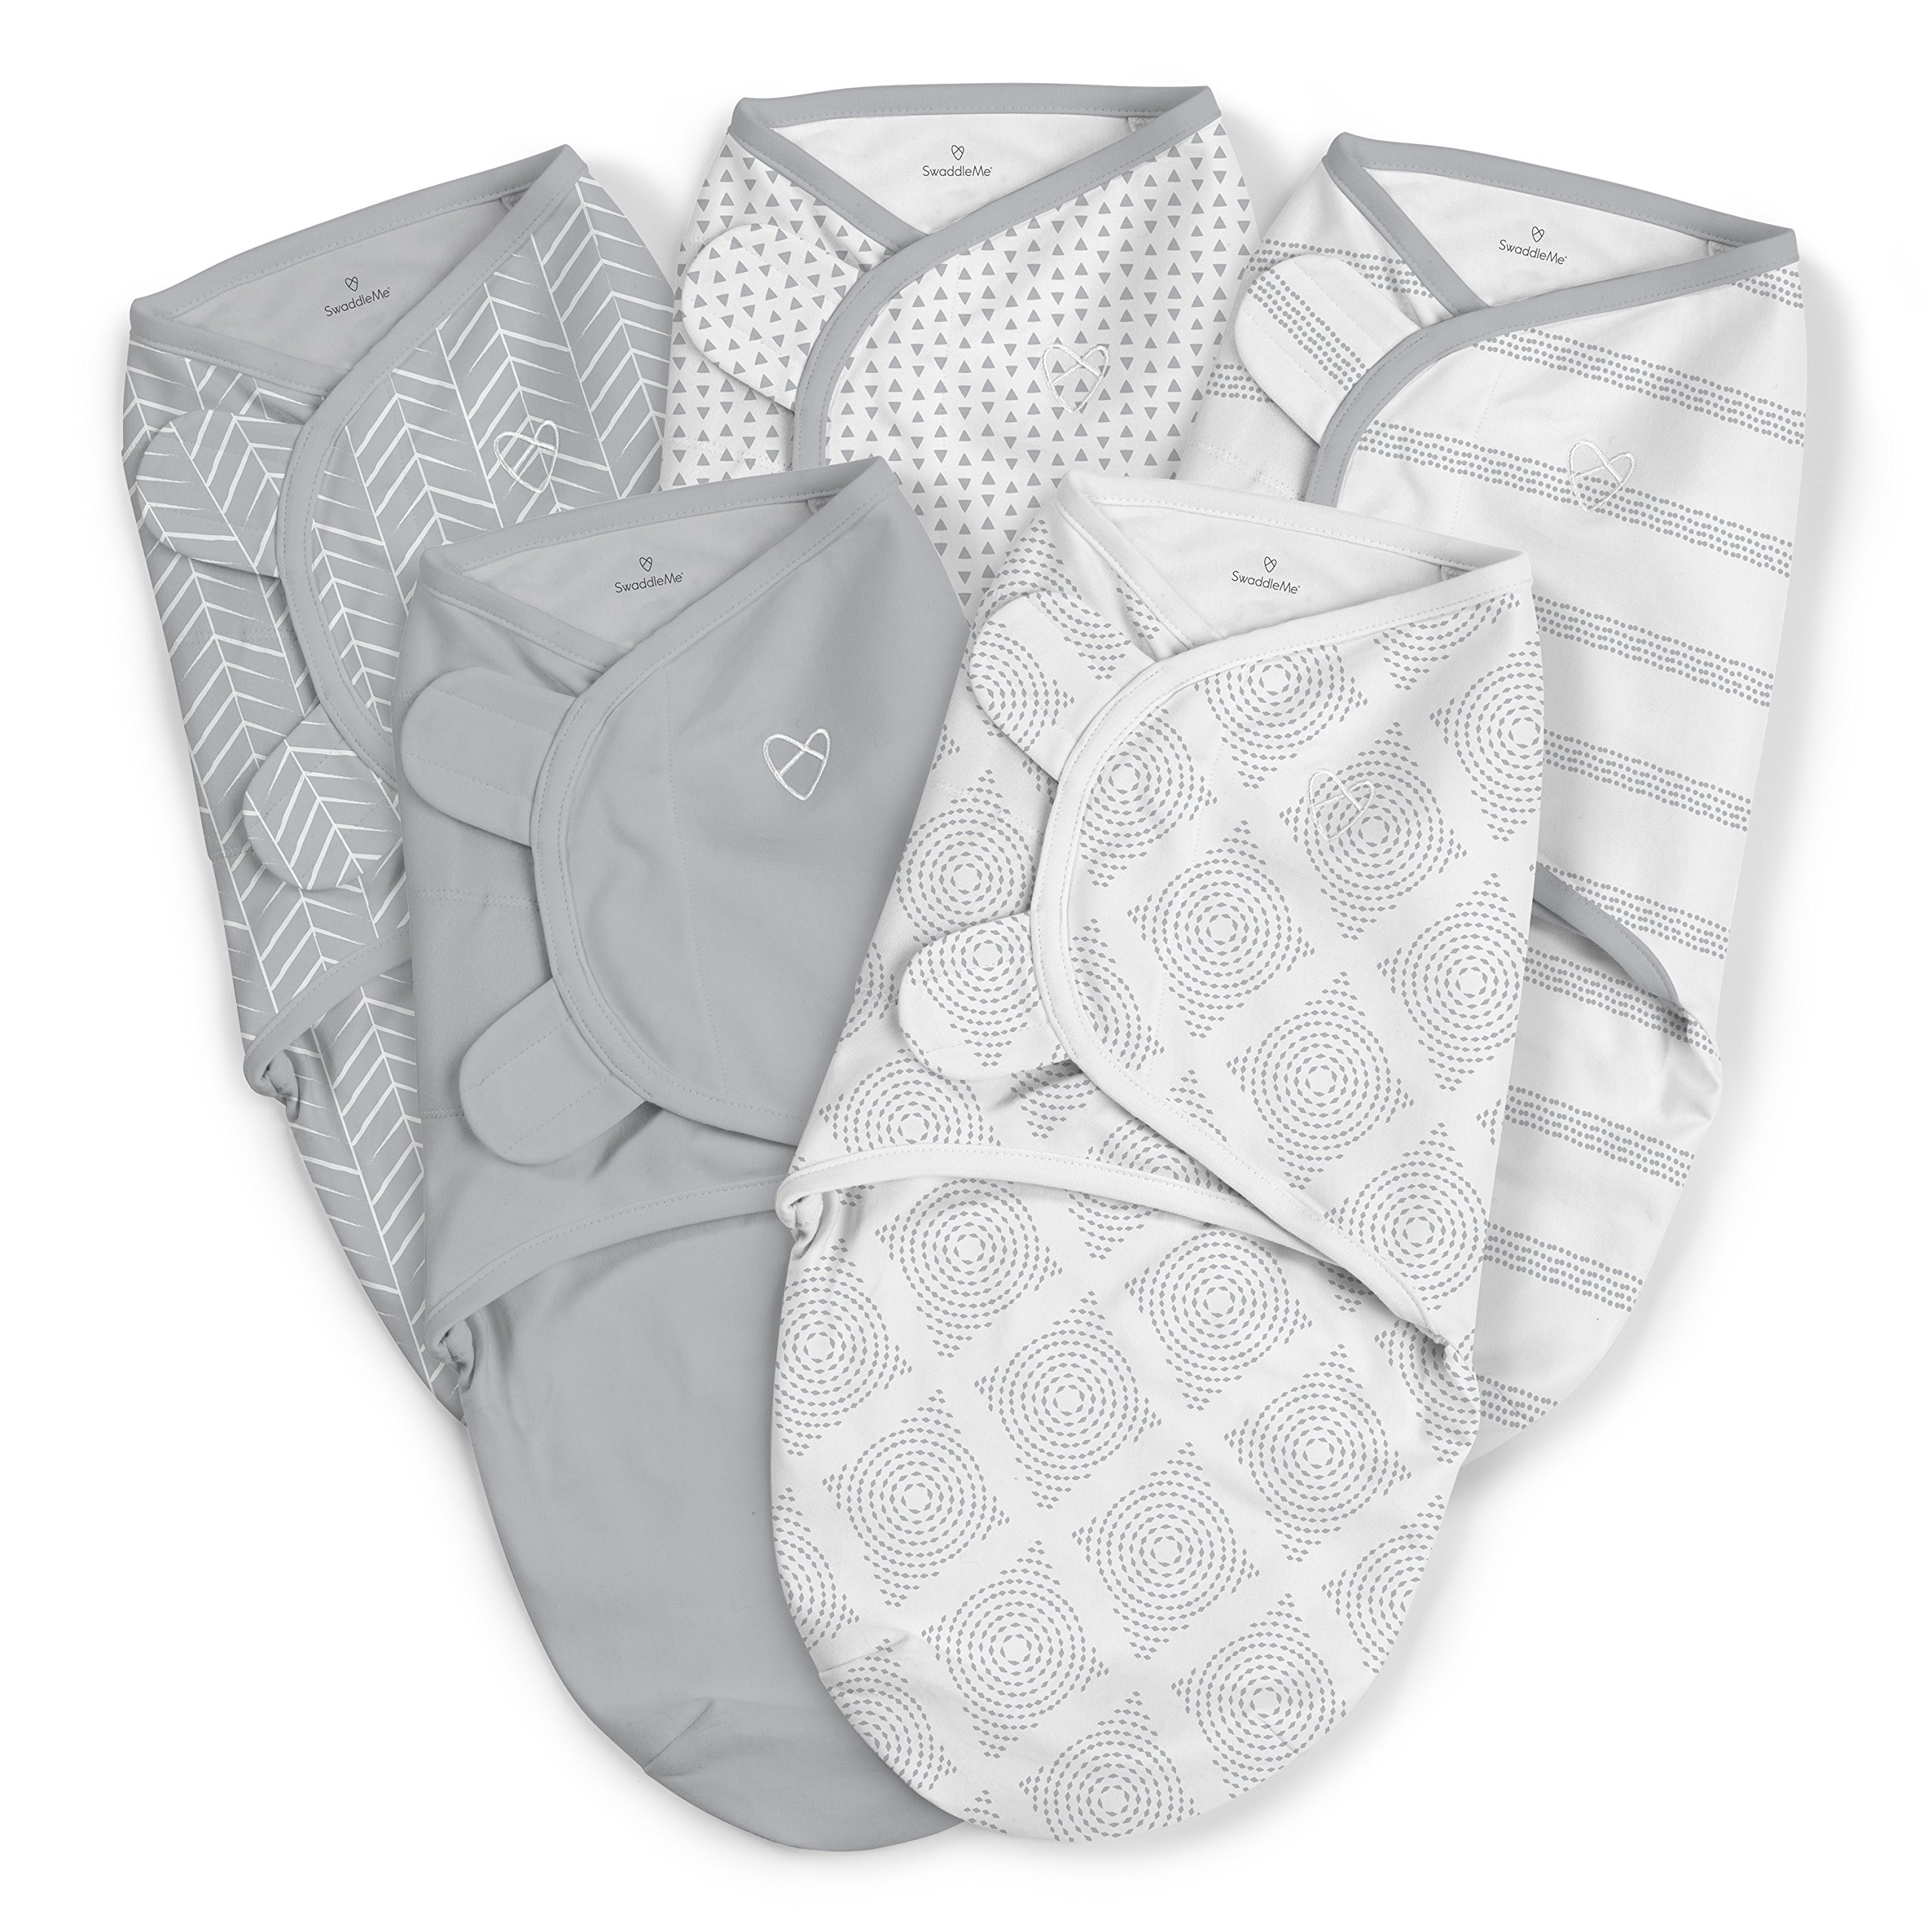 SwaddleMe Original Swaddle 5-PK, Grays for Days, Small